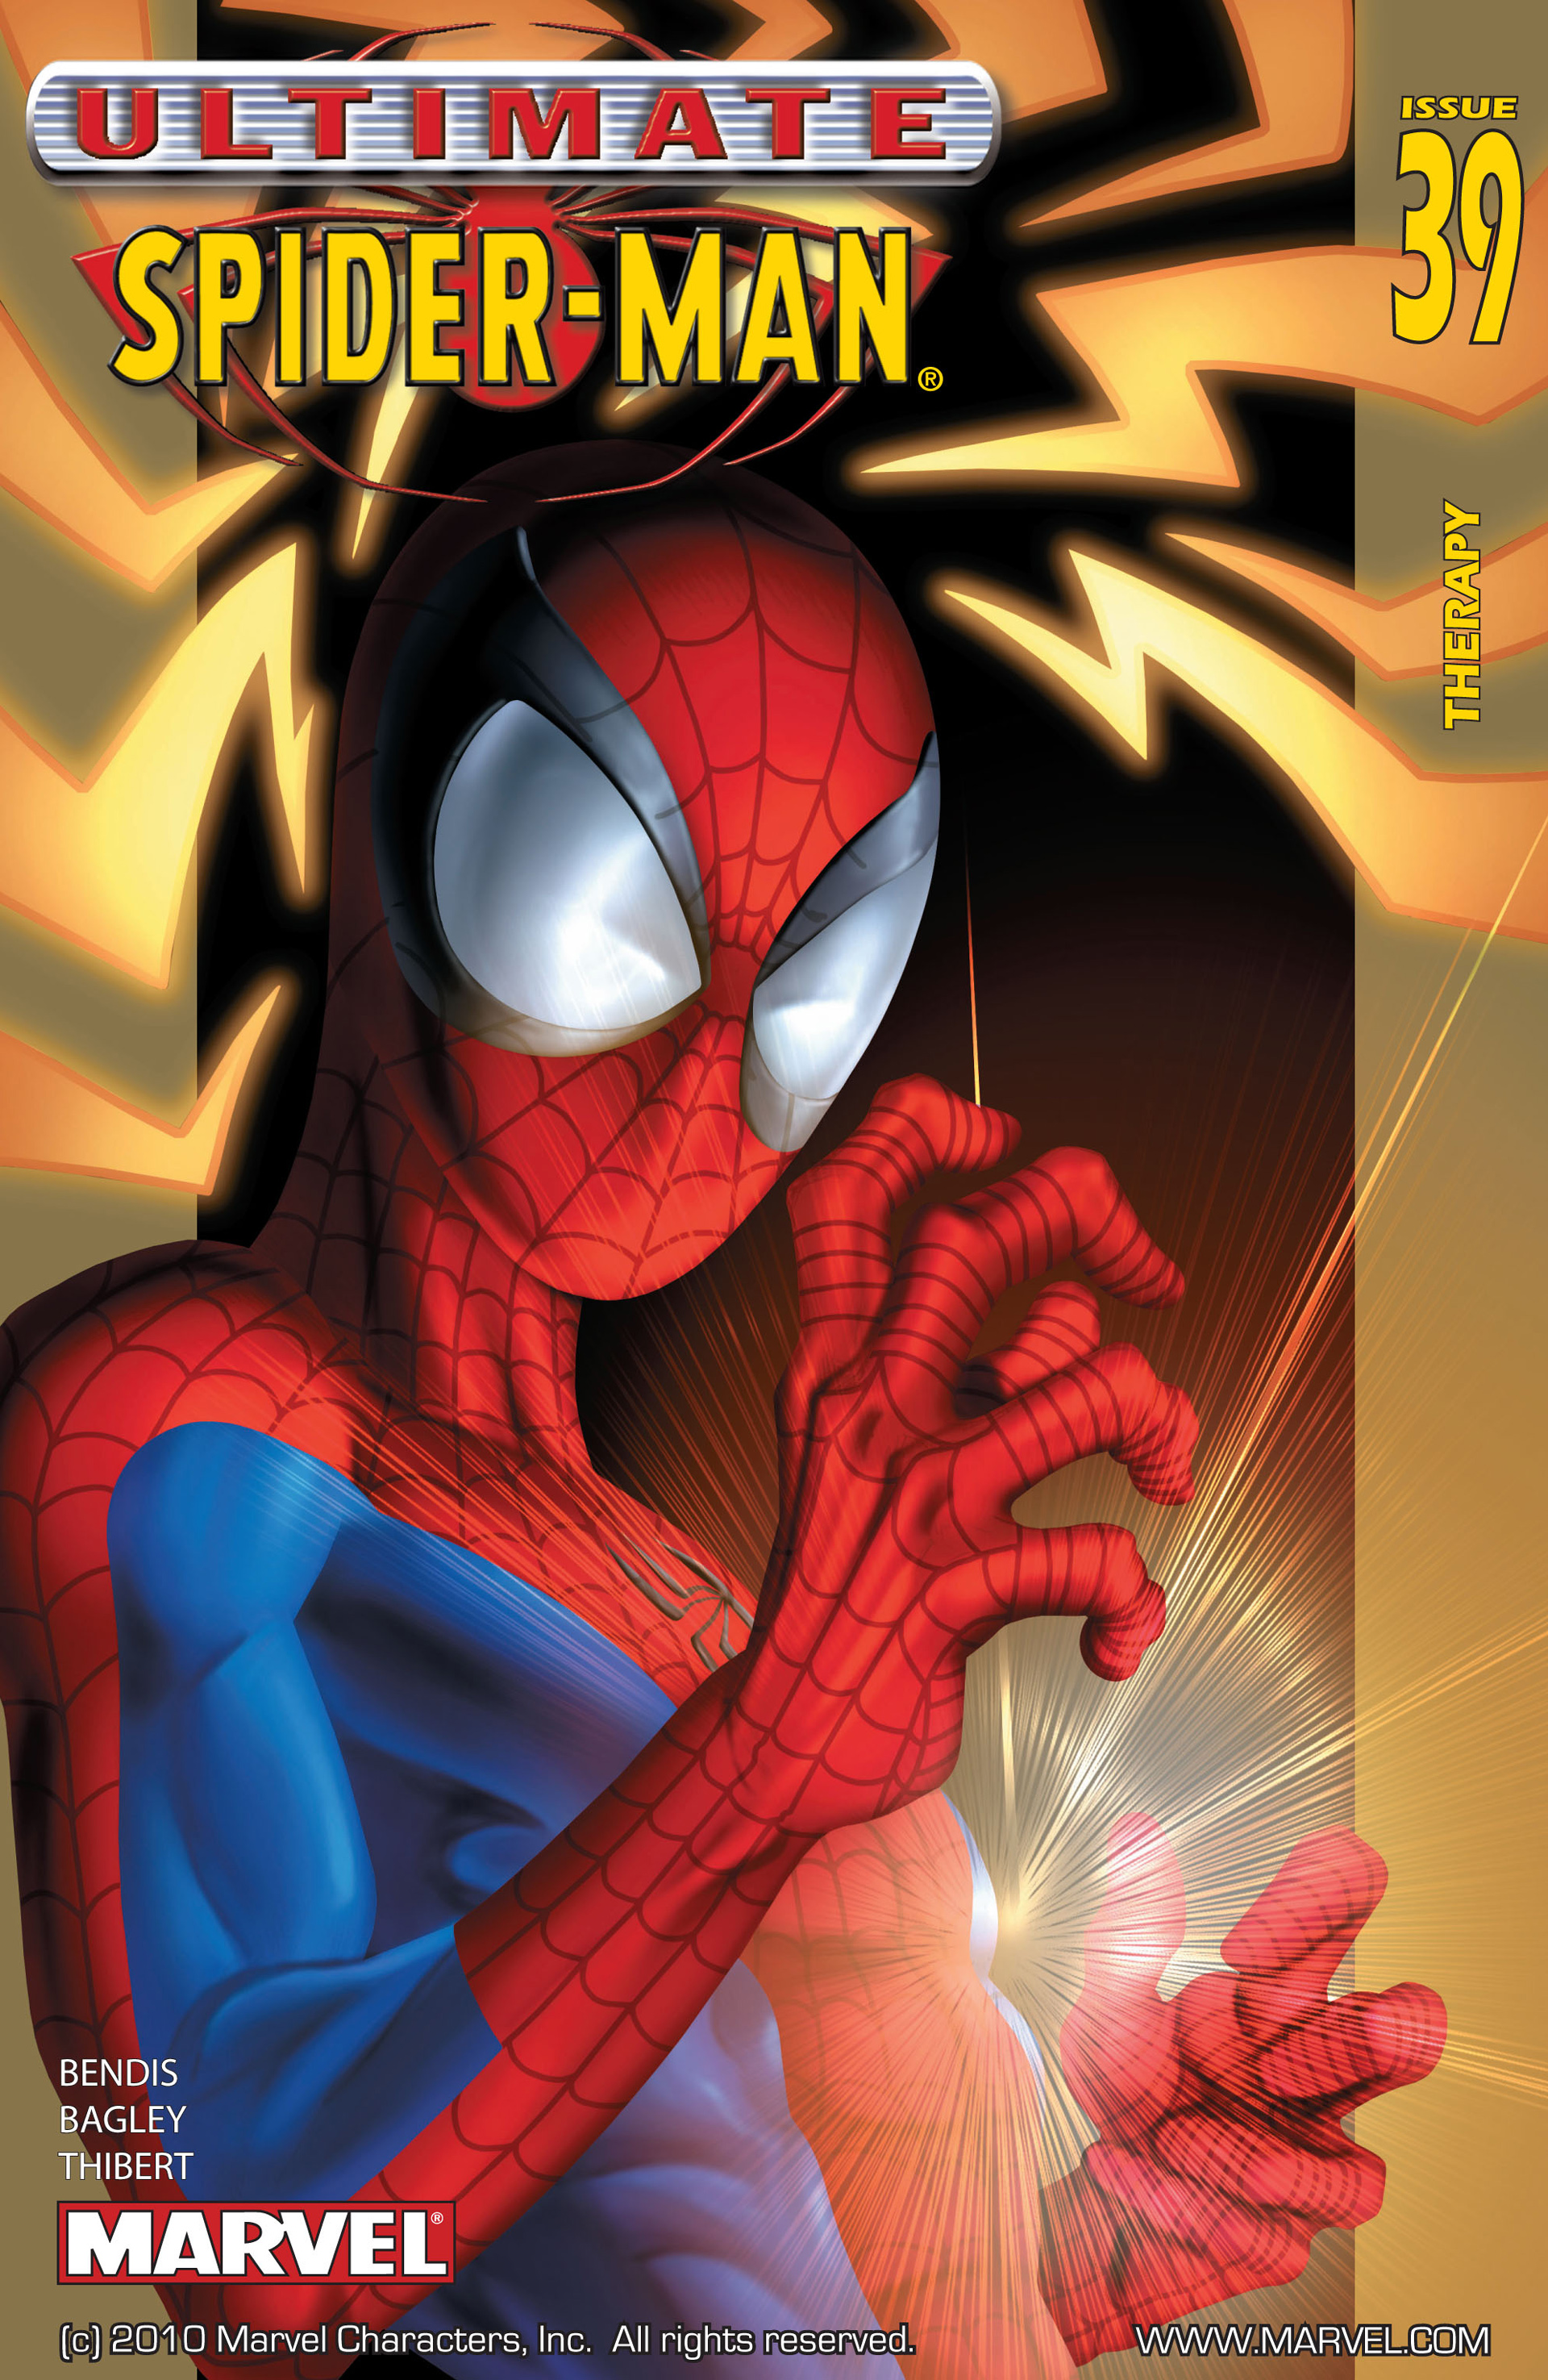 Ultimate Spider-Man (2000) 39 Page 1